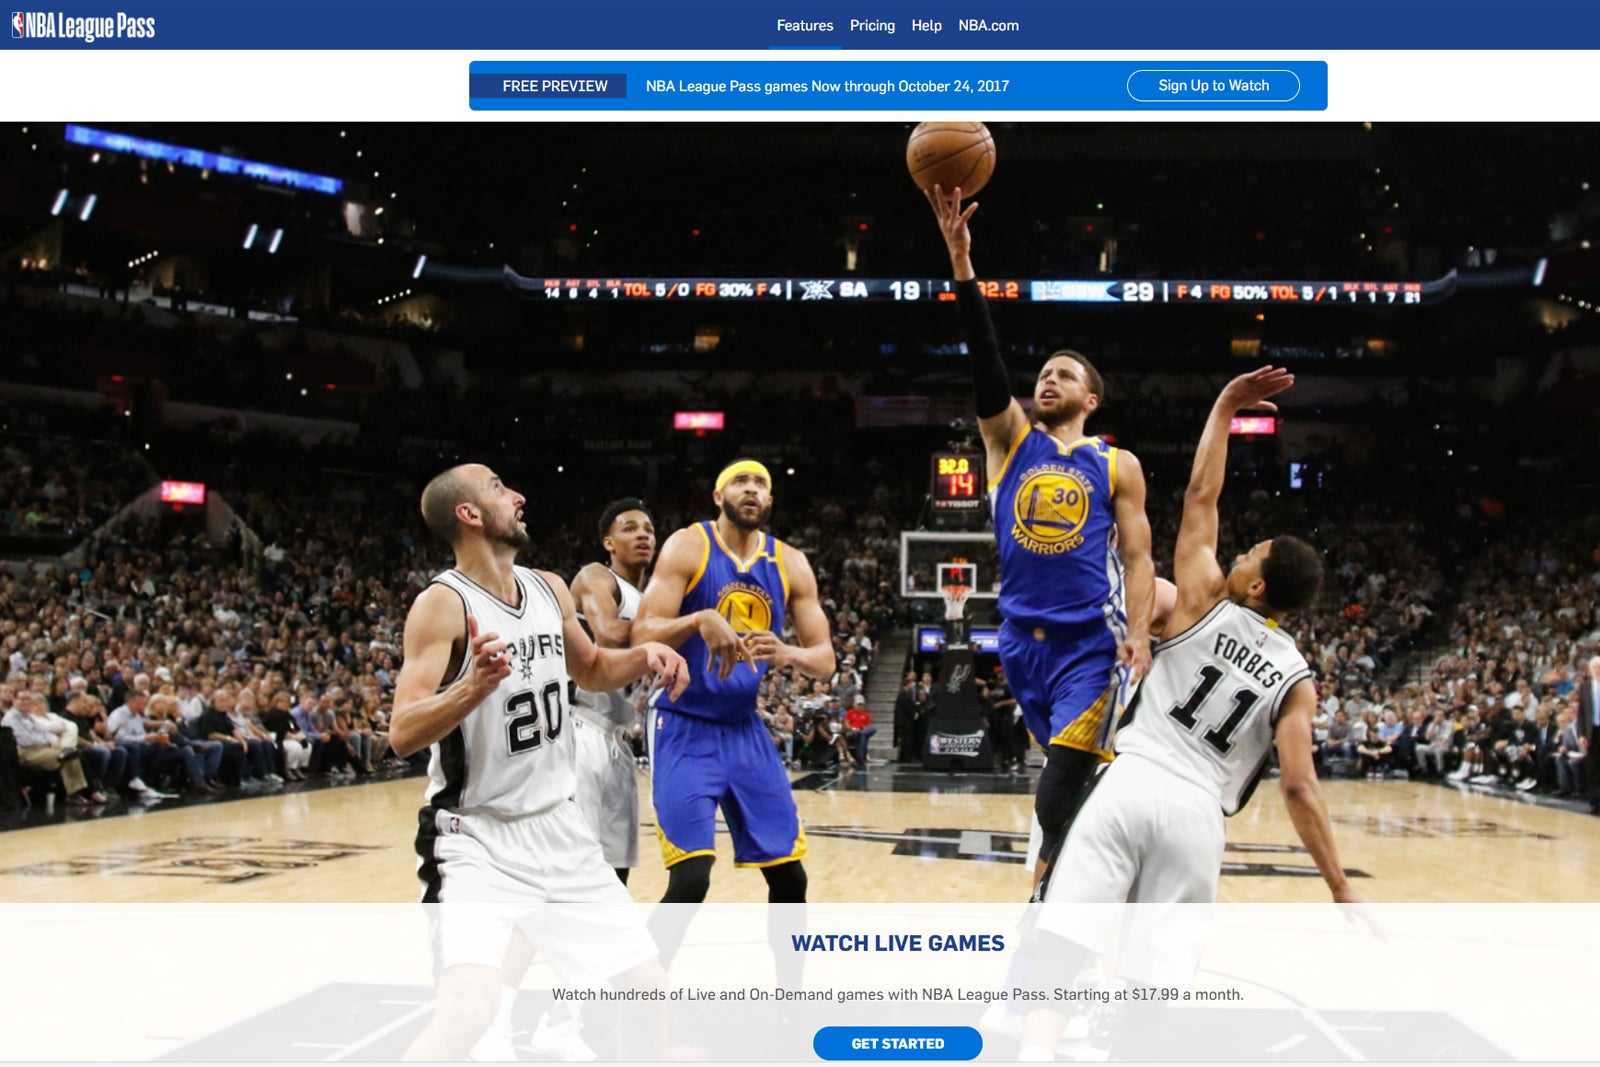 How to Watch NBA Games Live Online